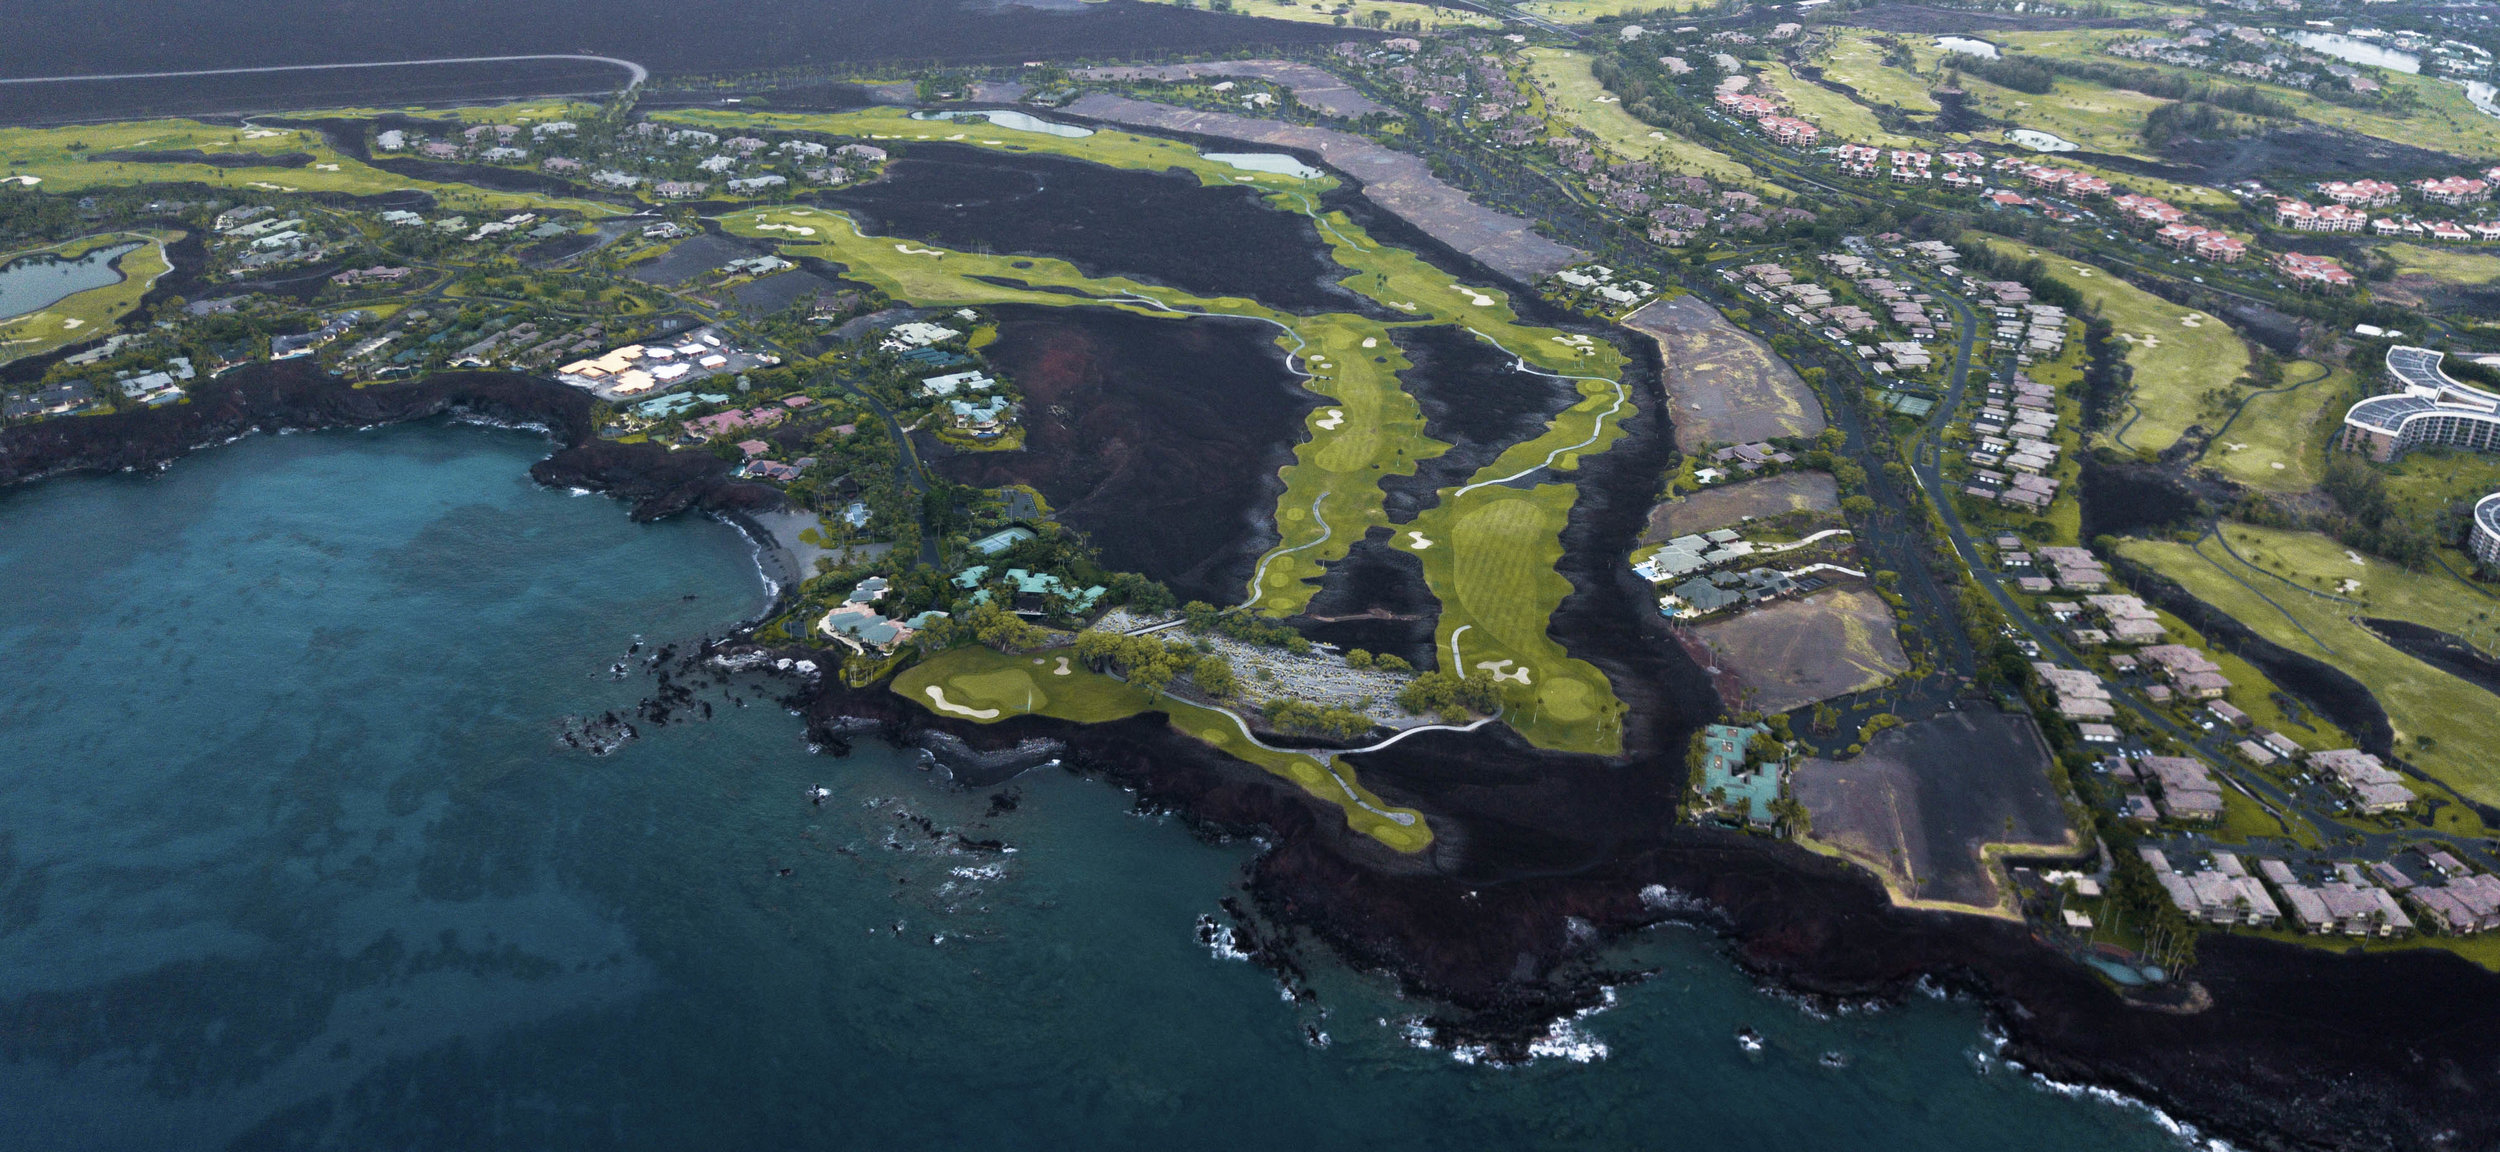 Aerial view of the luxury resort residential community of Ke Kailani at Mauna Lani Resort.